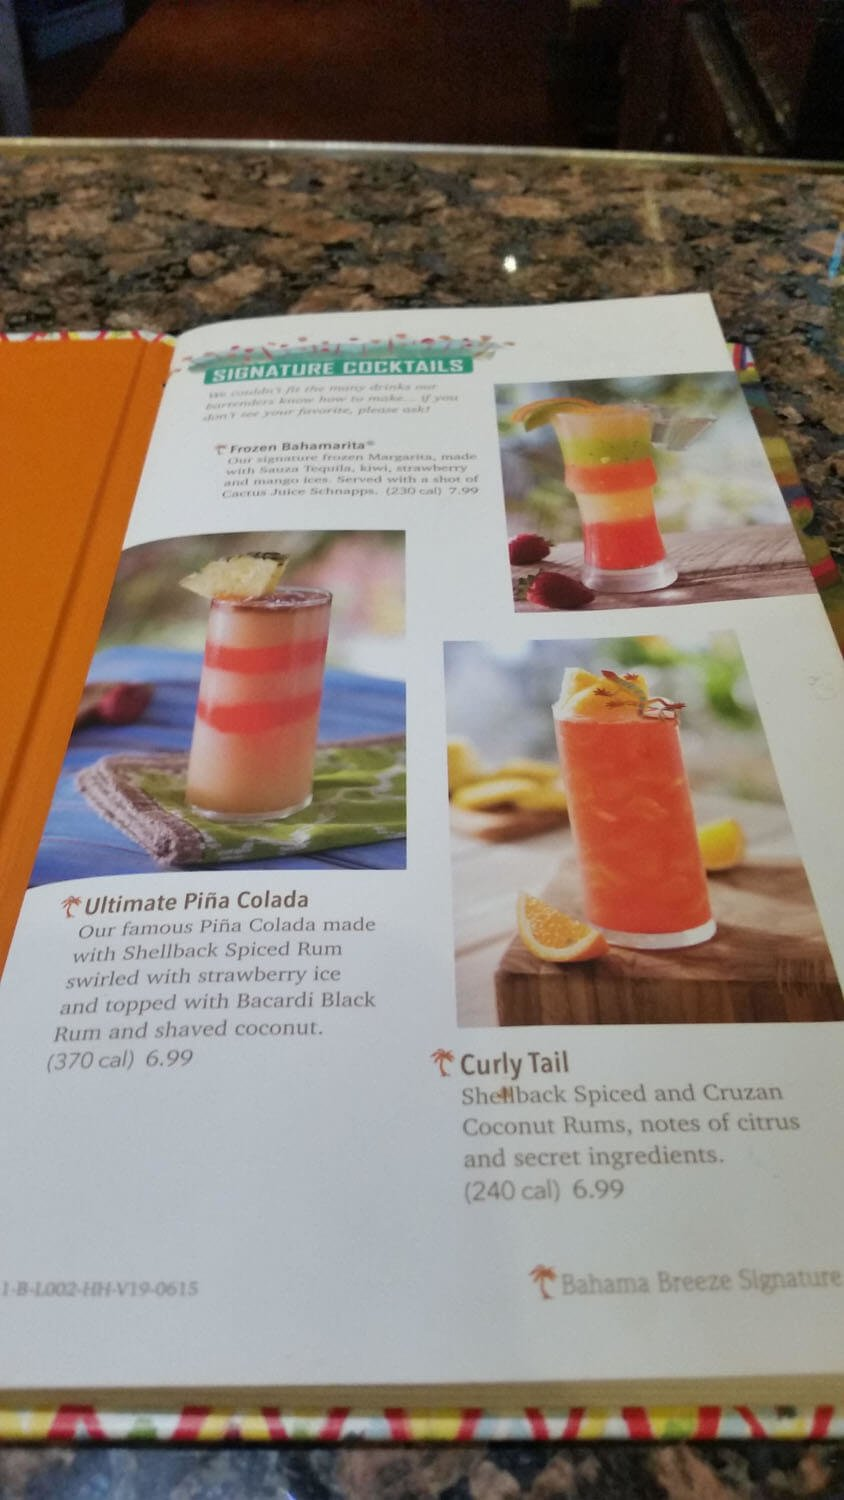 Bahama Breeze Menu – 19